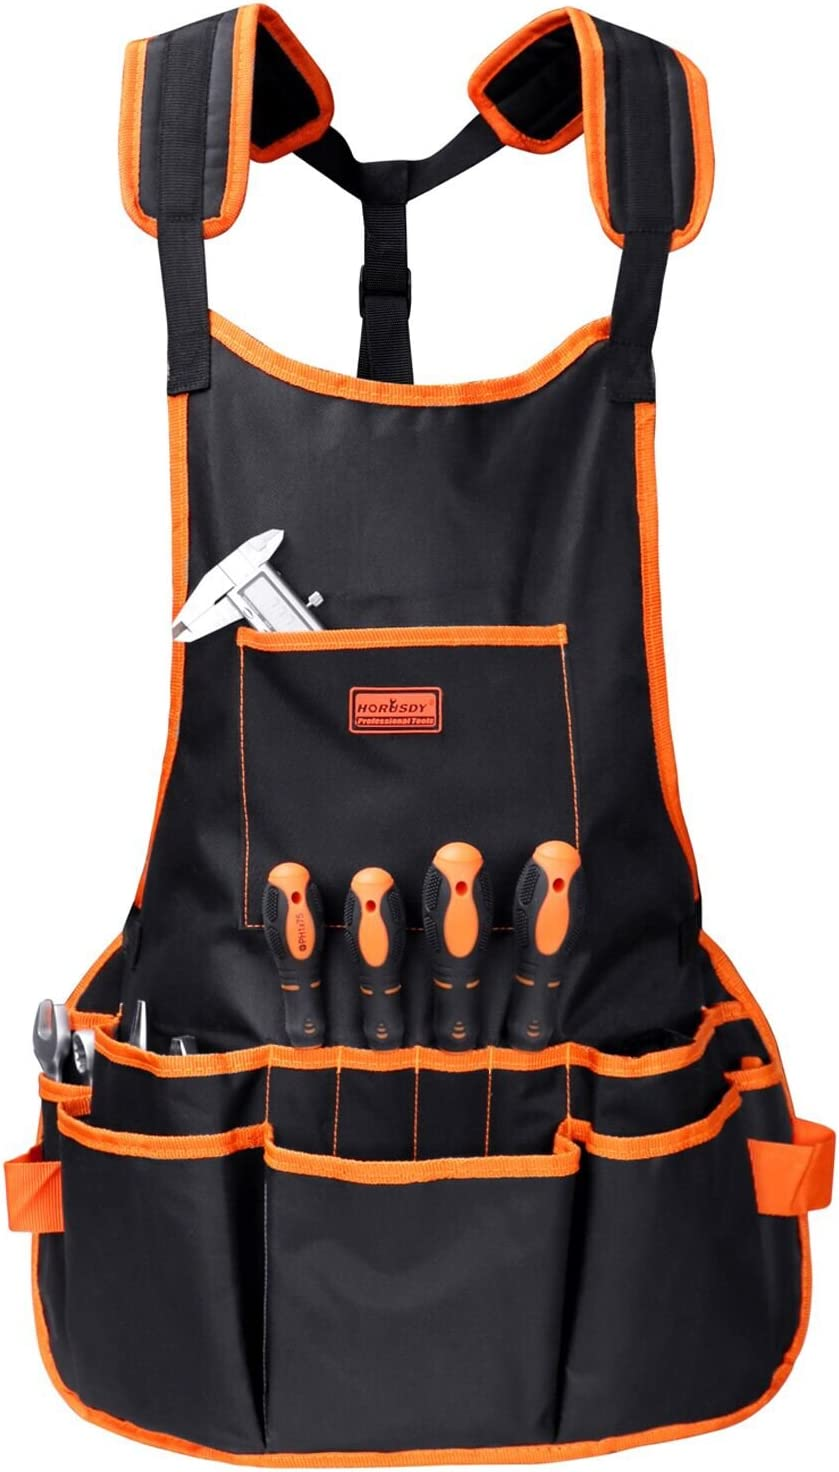 HORUSDY Utility Canvas Work Apron with 16 Pockets, Tool Apron, Cross-Back Straps Adjustable Size, Fits Men & Women, Protective and Waterproof